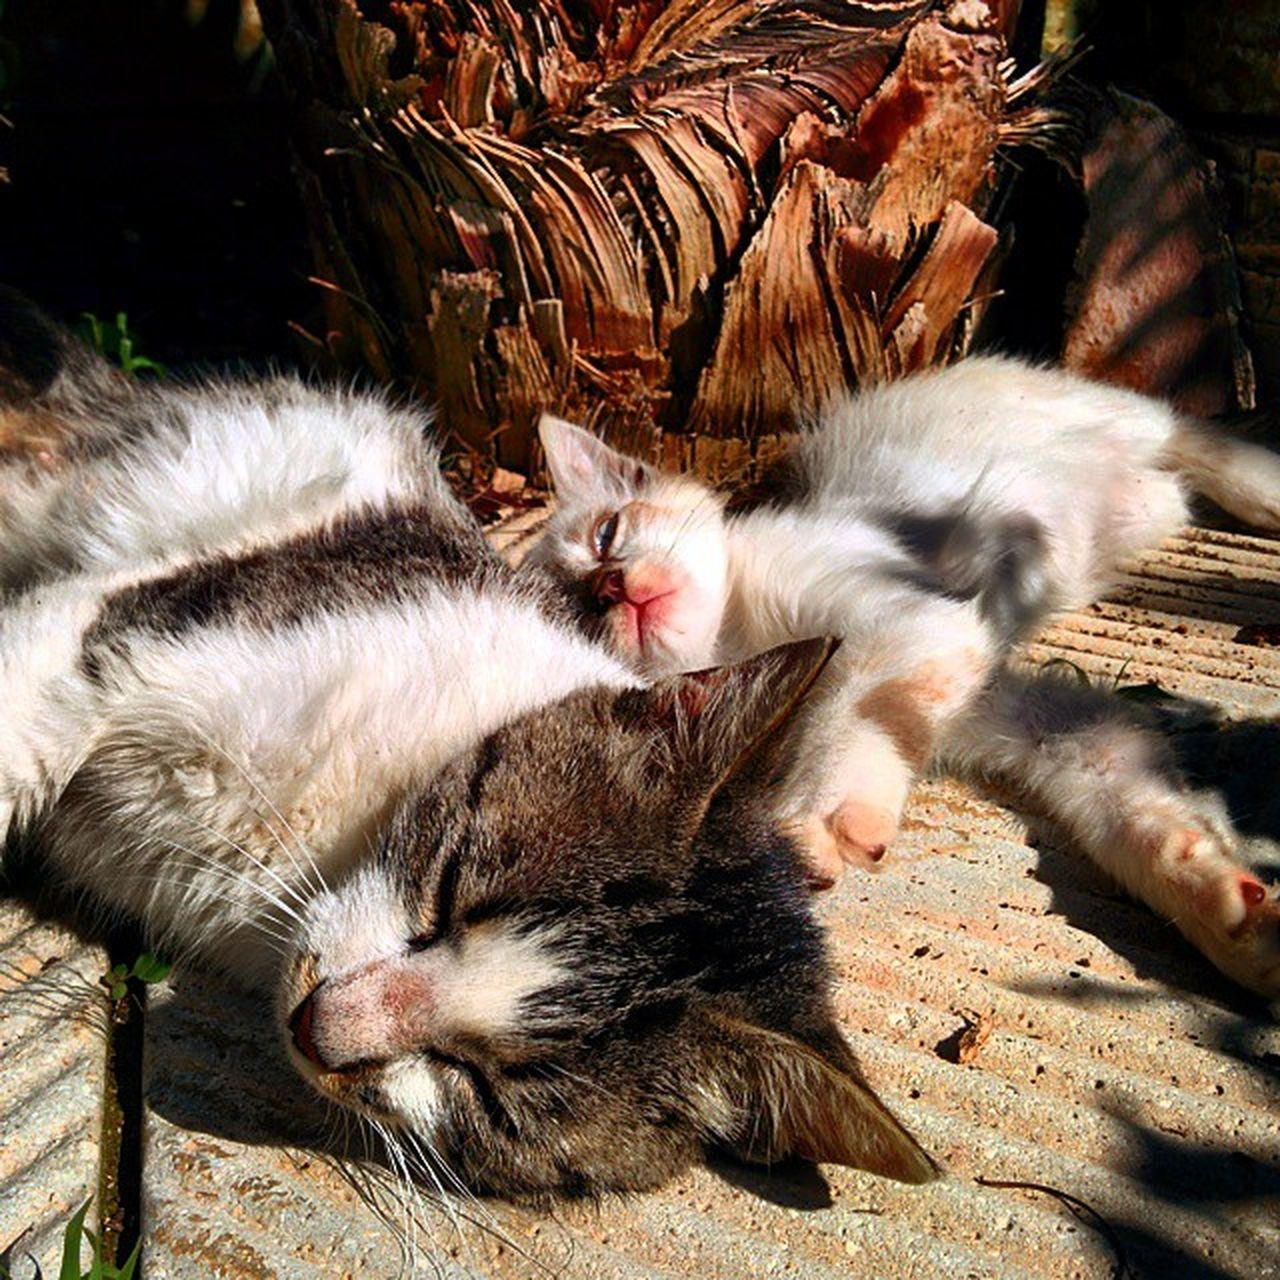 domestic cat, animal themes, feline, domestic animals, pets, one animal, day, whisker, mammal, cute, no people, relaxation, lying down, outdoors, nature, close-up, kitten